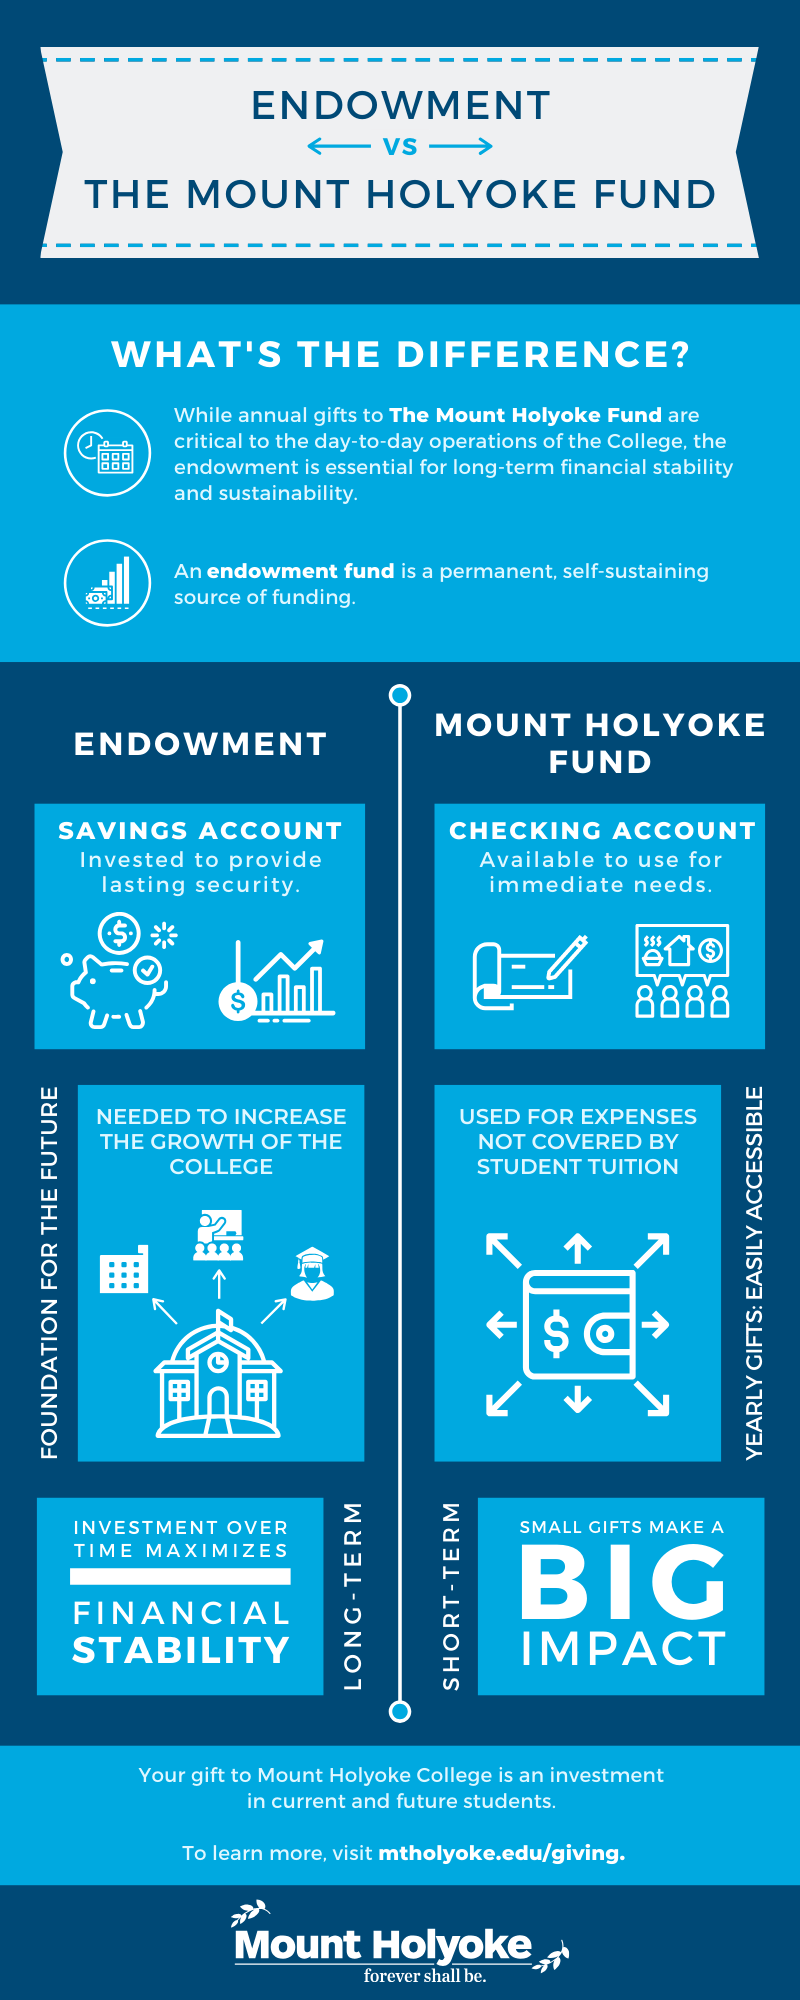 Endowment vs. The Mount Holyoke Fund: What's the difference? While annual gifts to The Mount Holyoke Fund are critical to the day-to-day operations of the College, the endowment is a permanent, self-sustaining source of funding that is essential for long-term financial stability.